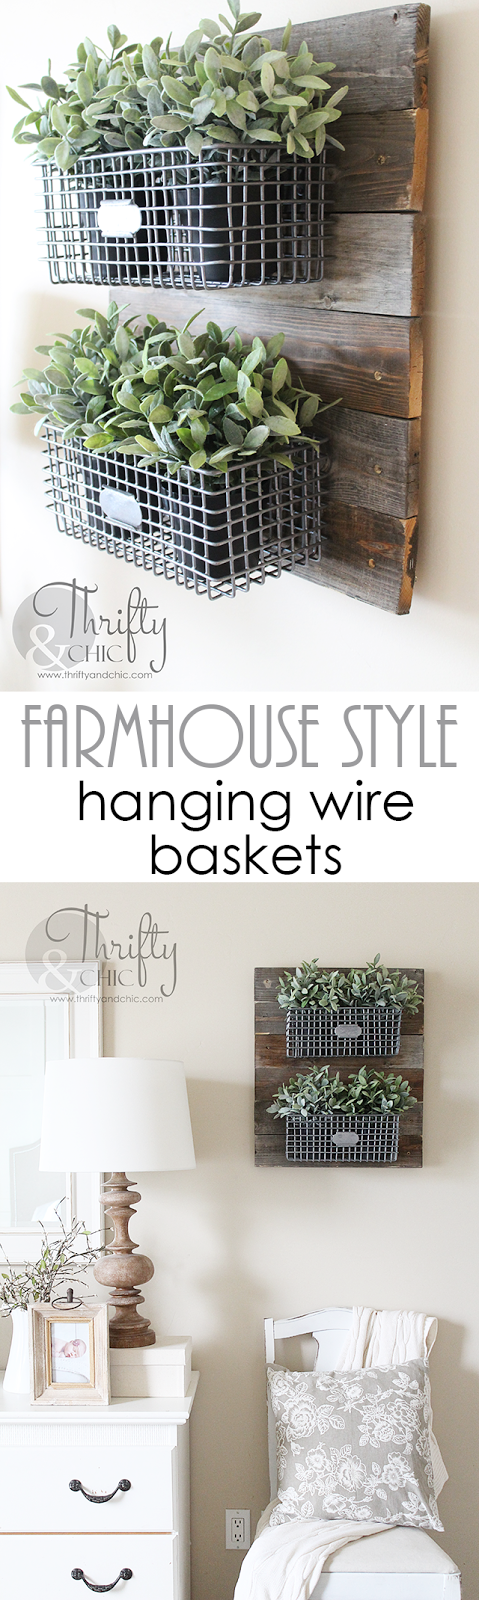 Diy Farmhouse Style Hanging Wire Baskets On Reclaimed Wood Great Way To Infuse Your House